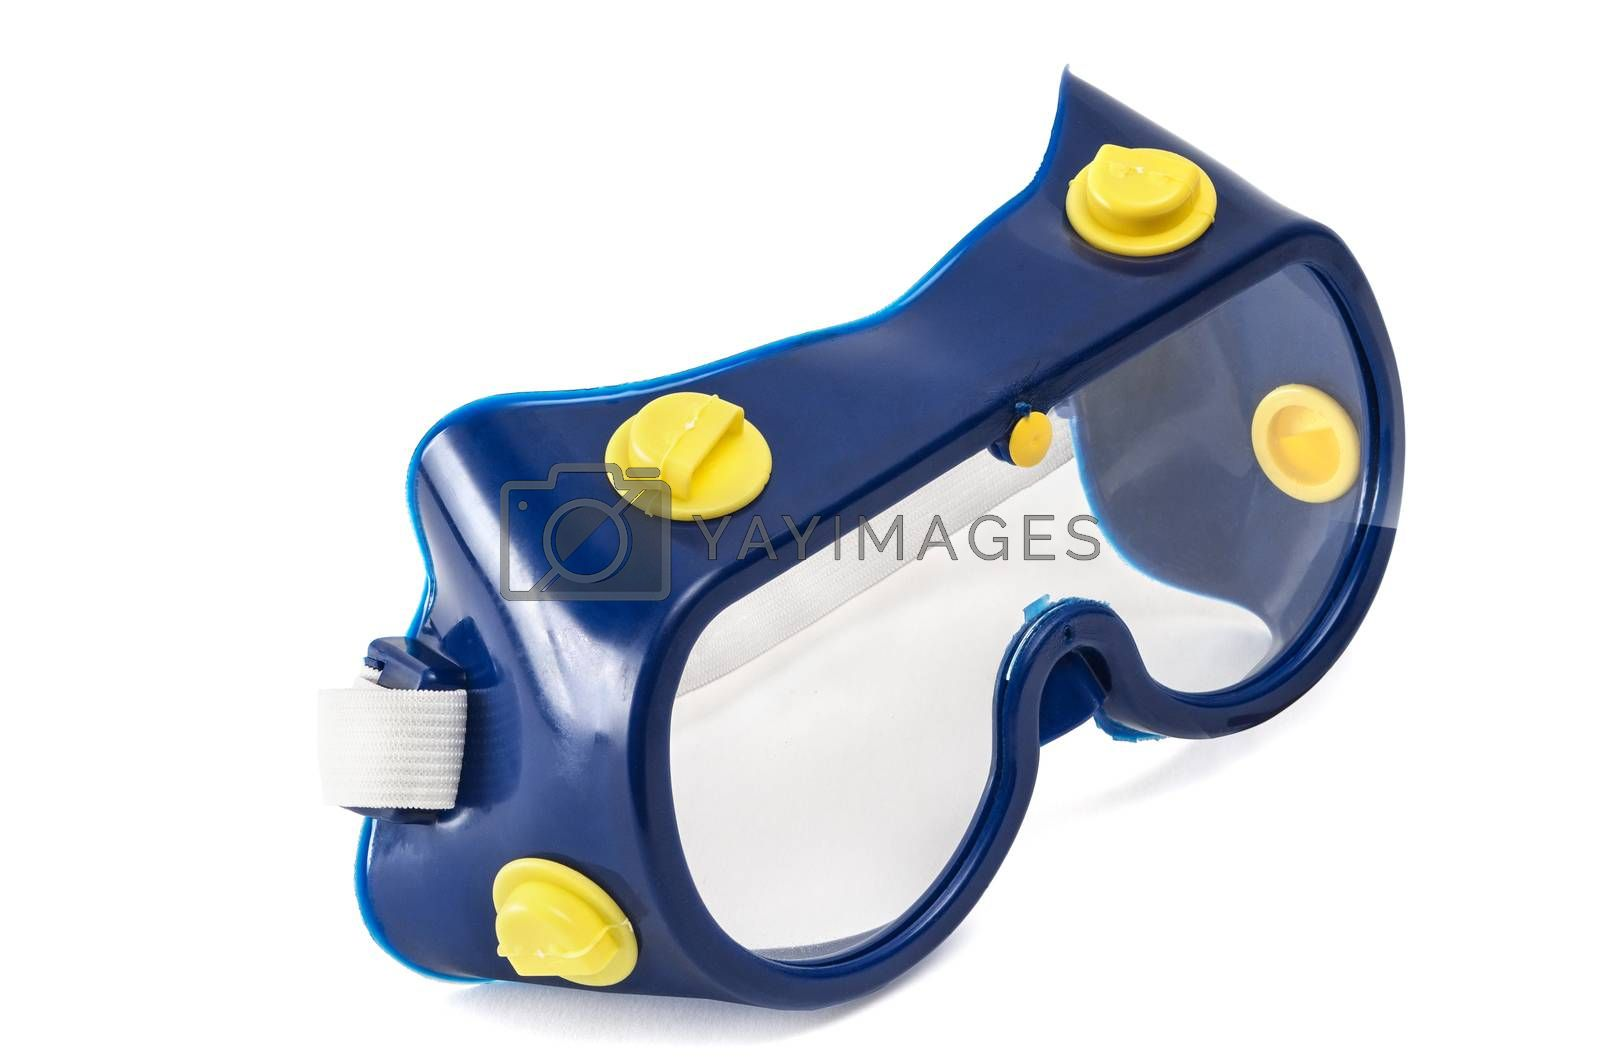 blue Safety glasses isolated on a white background